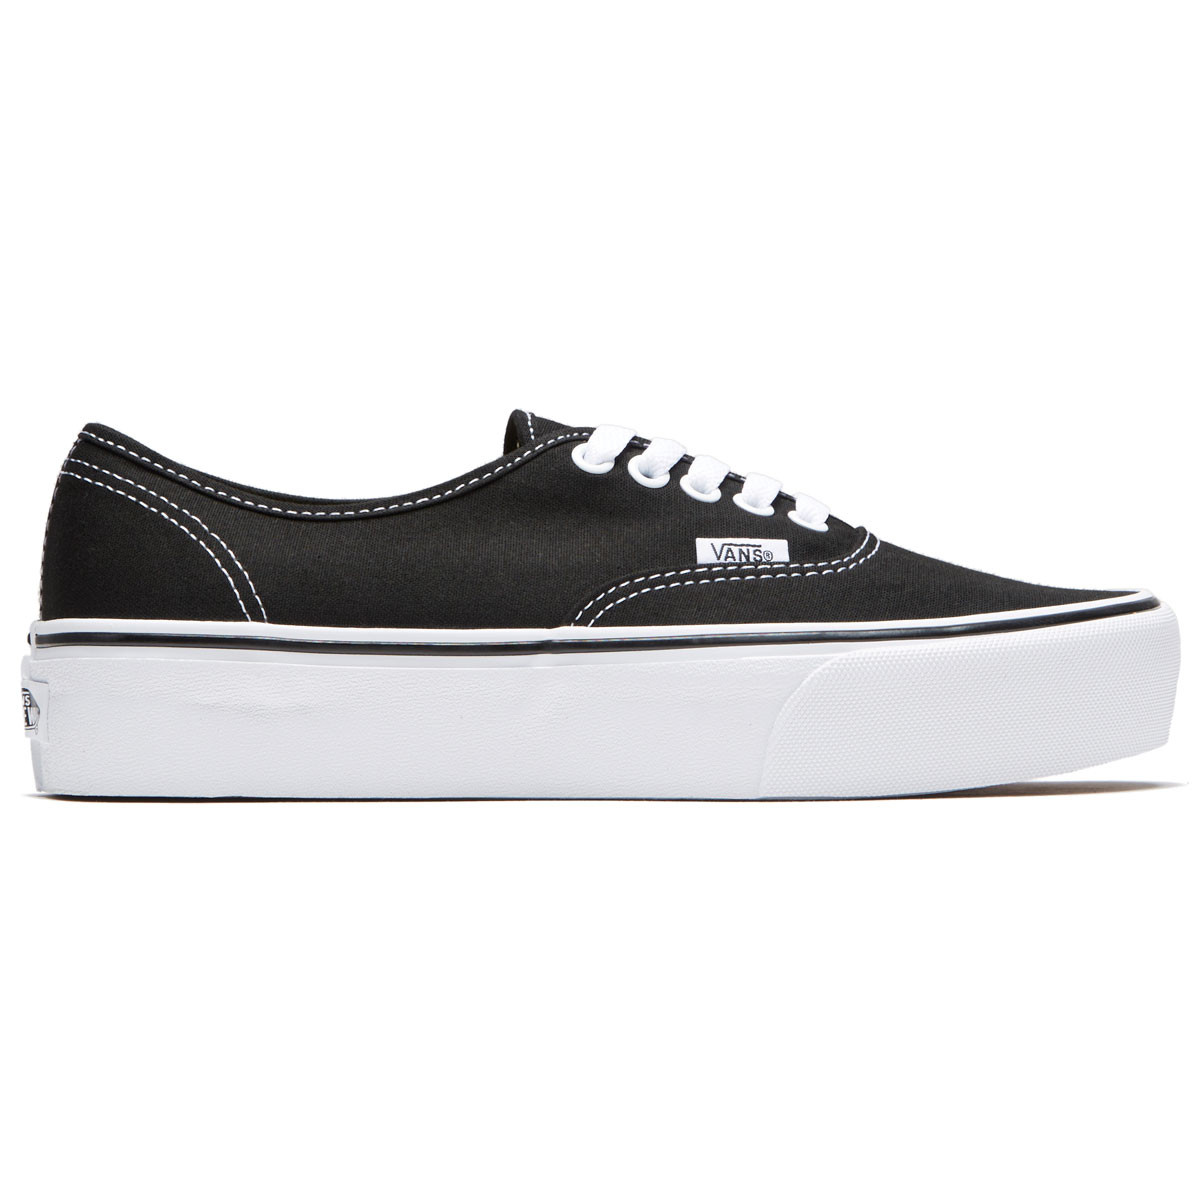 0701530d4b Vans Unisex Authentic Platform 2.0 Shoes - Black - 4.5